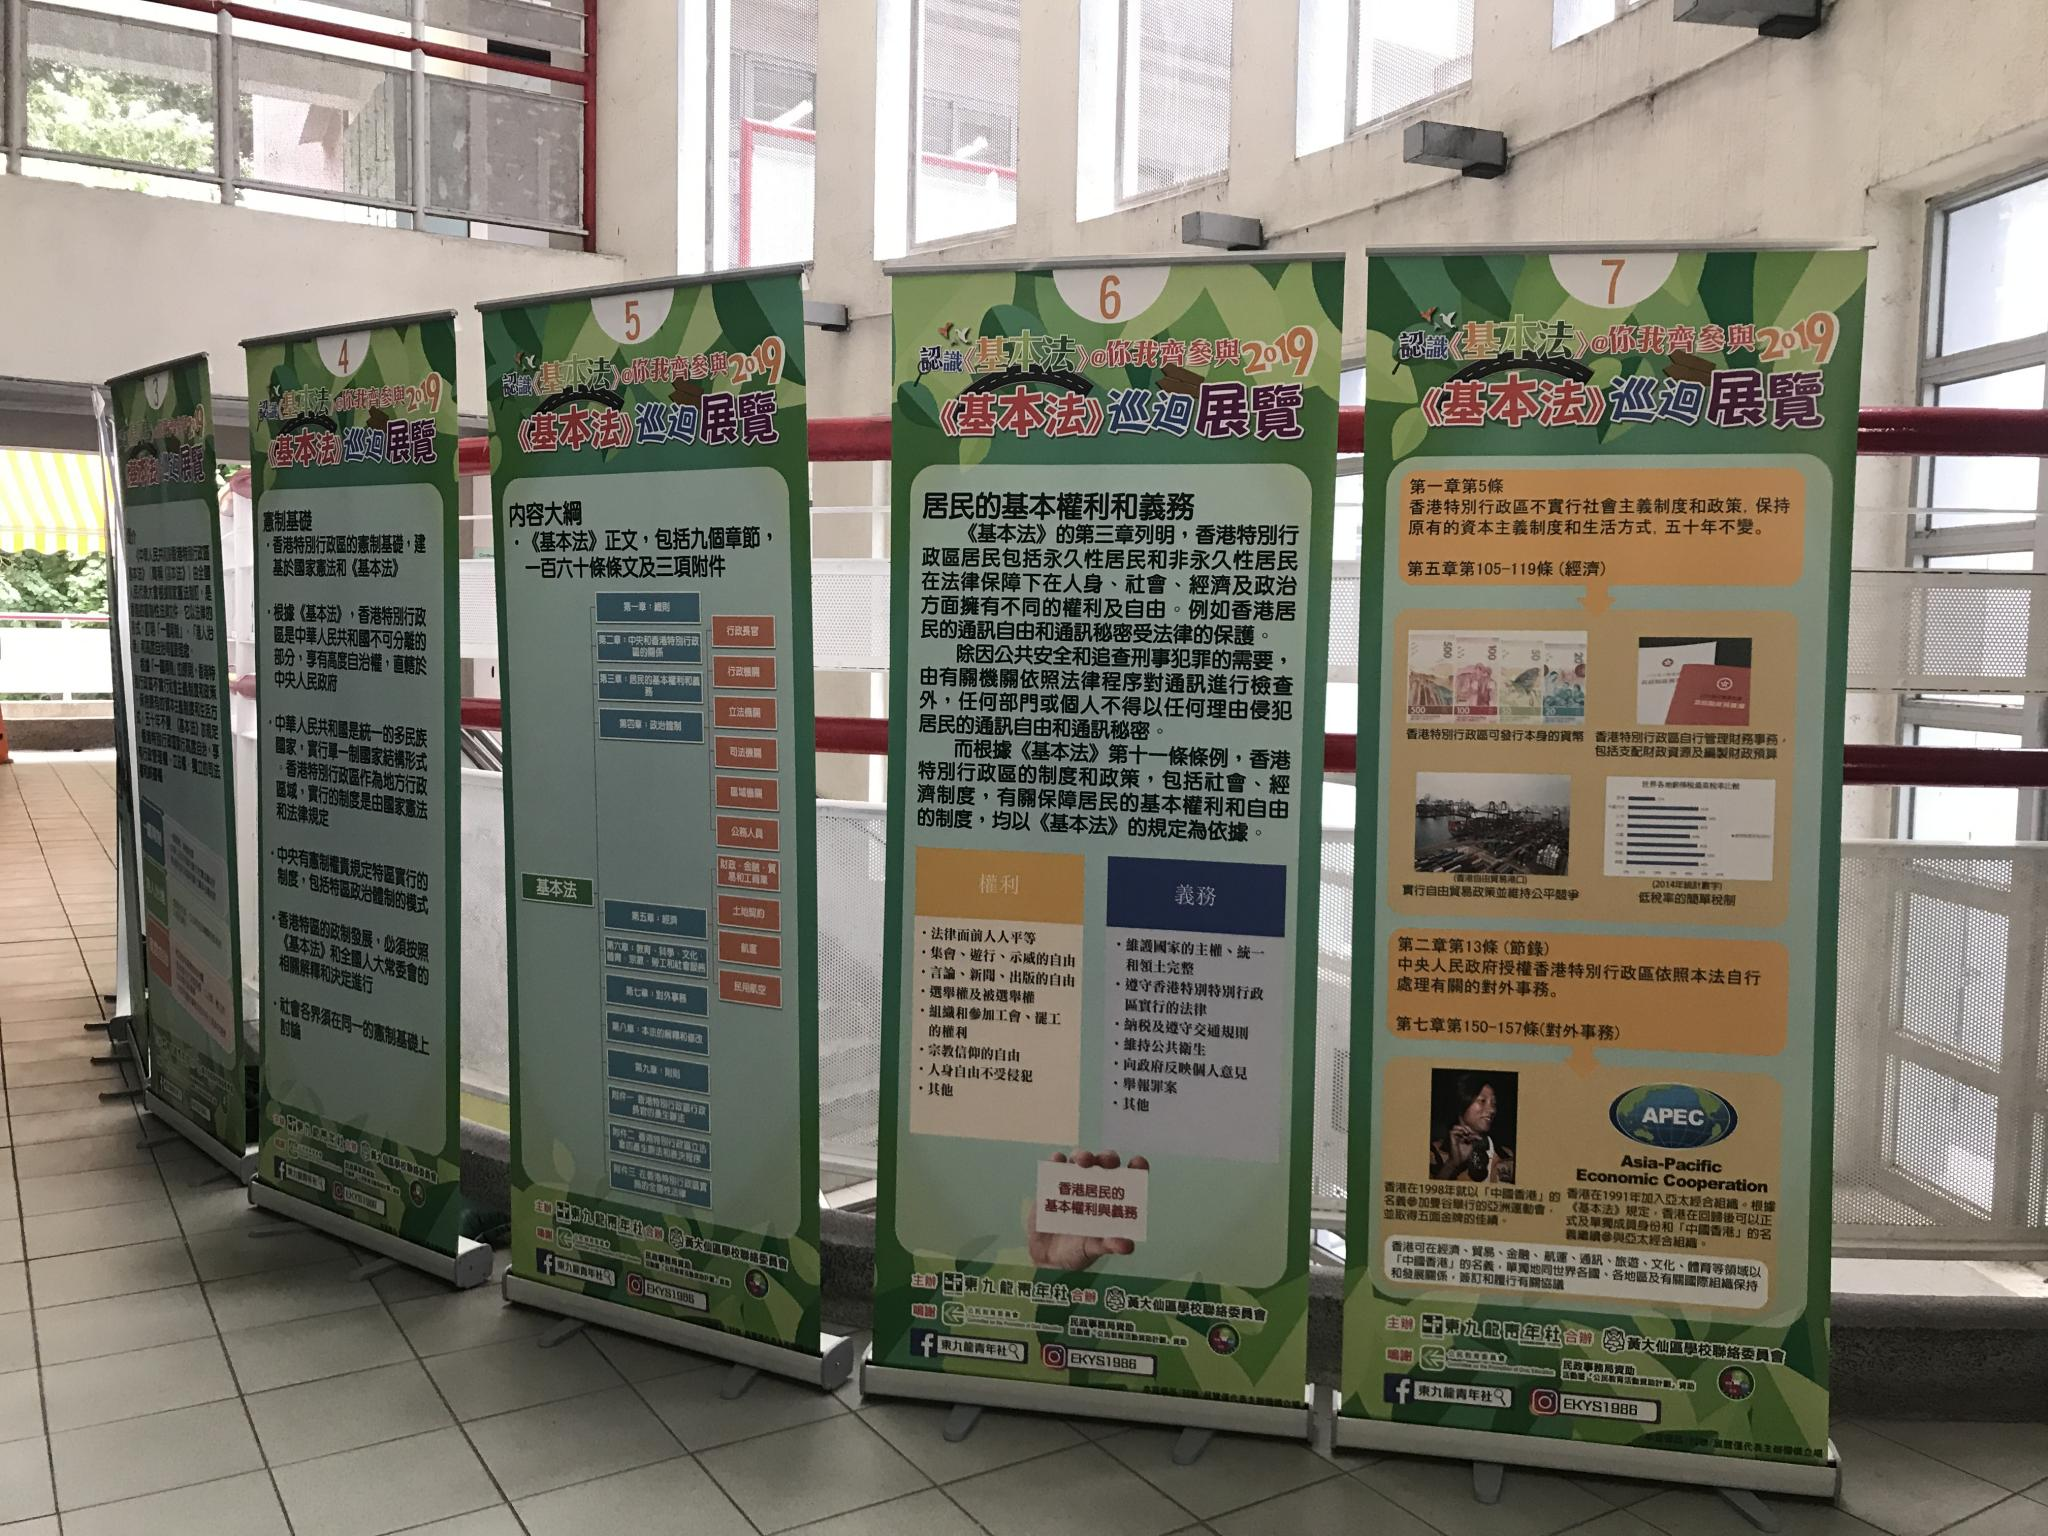 The exhibition roll-up banners display the general principals of the Basic Law.